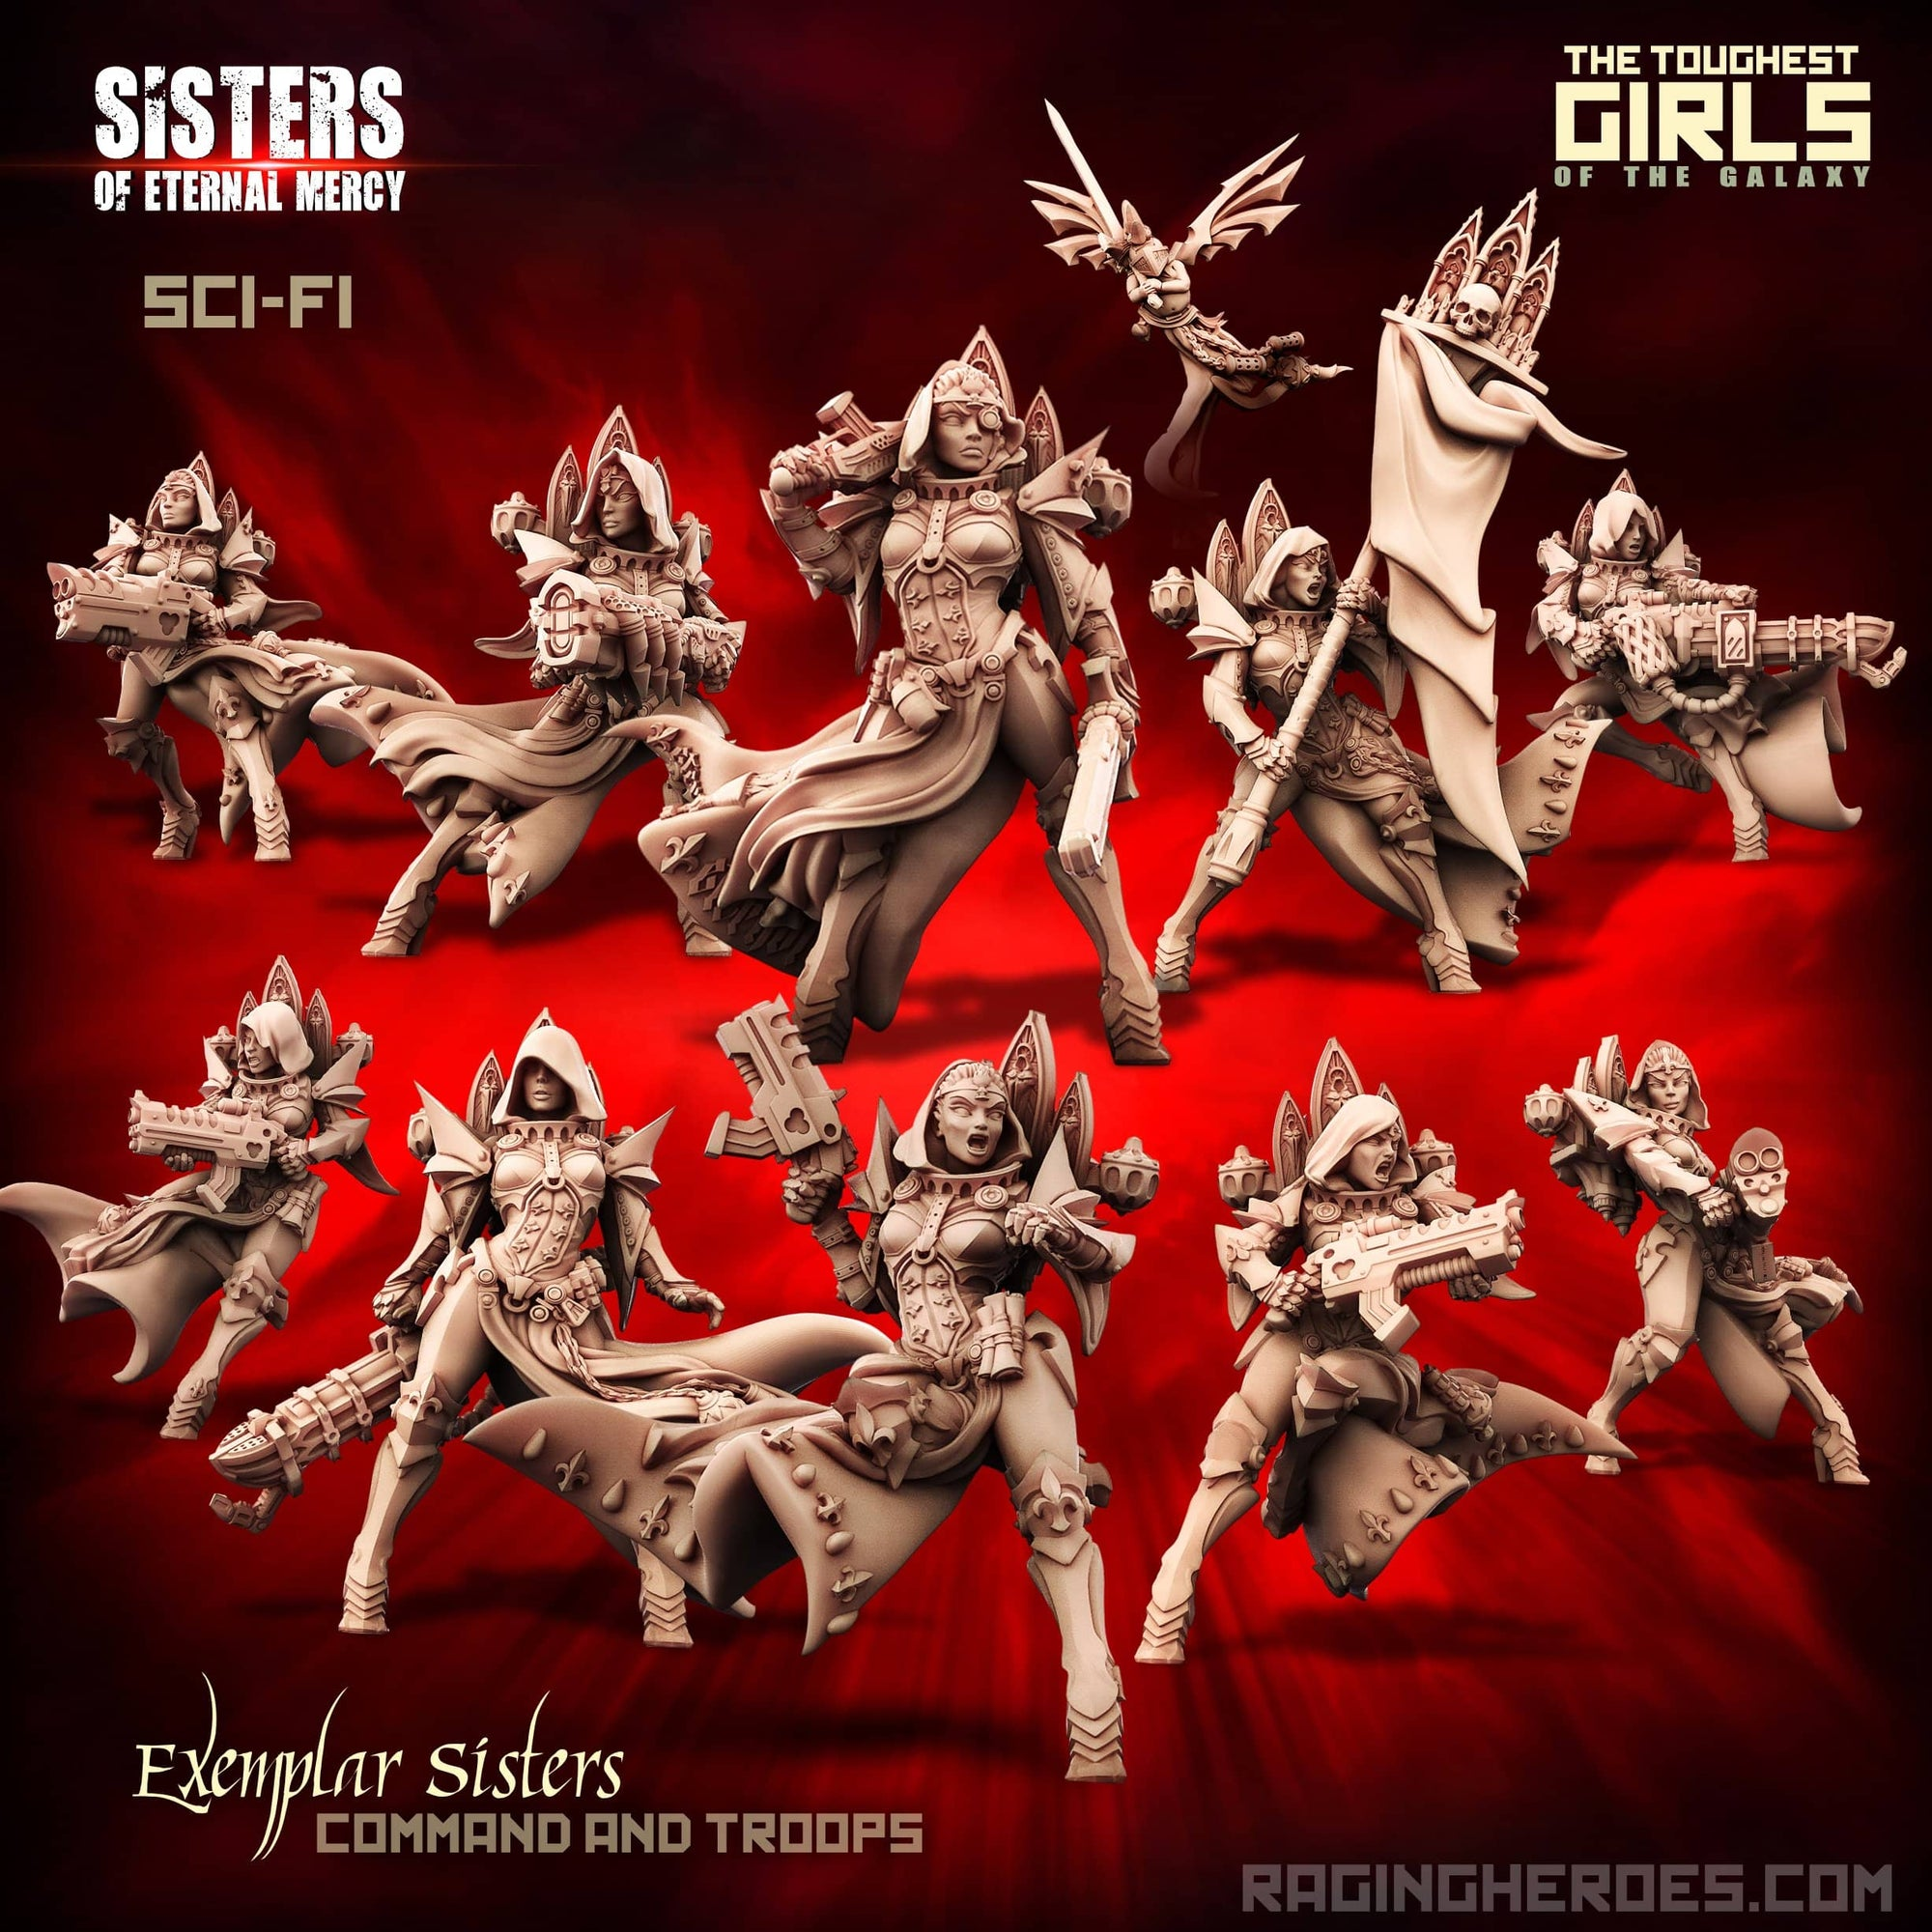 New Exemplar Sisters Pack (SoEM - SF) - Raging Heroes